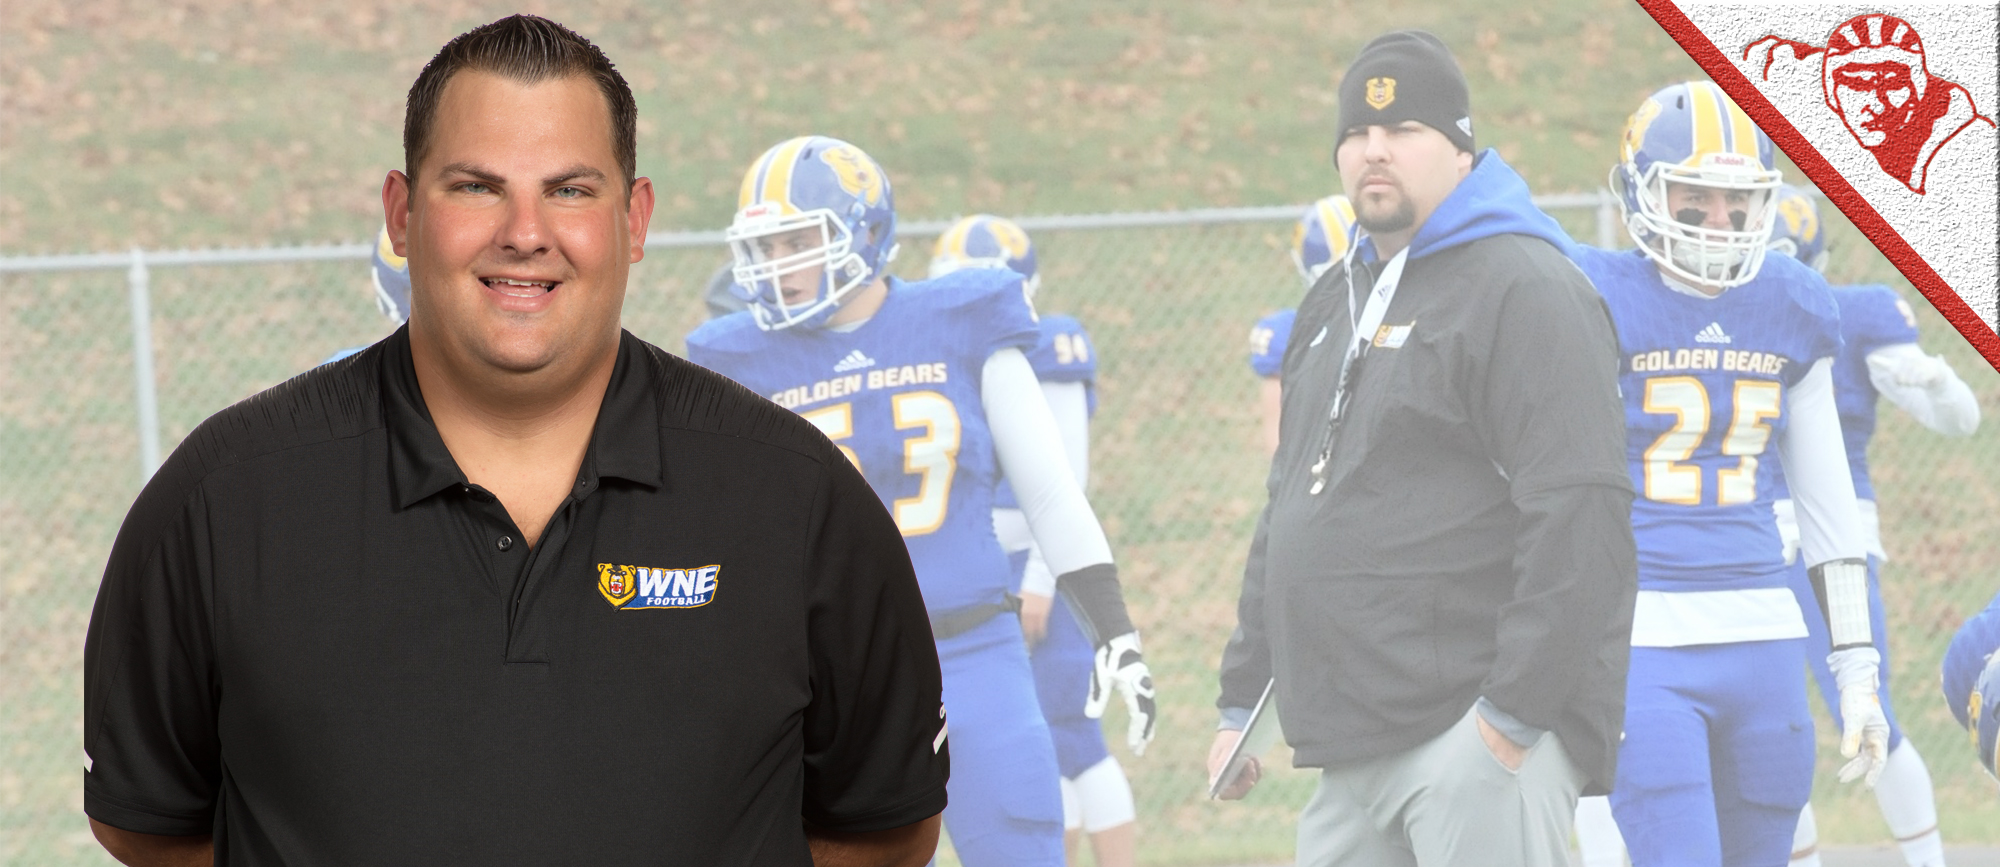 Alex Bresner Named DII/DIII Assistant Coach of the Year by Gridiron Club of Greater Boston